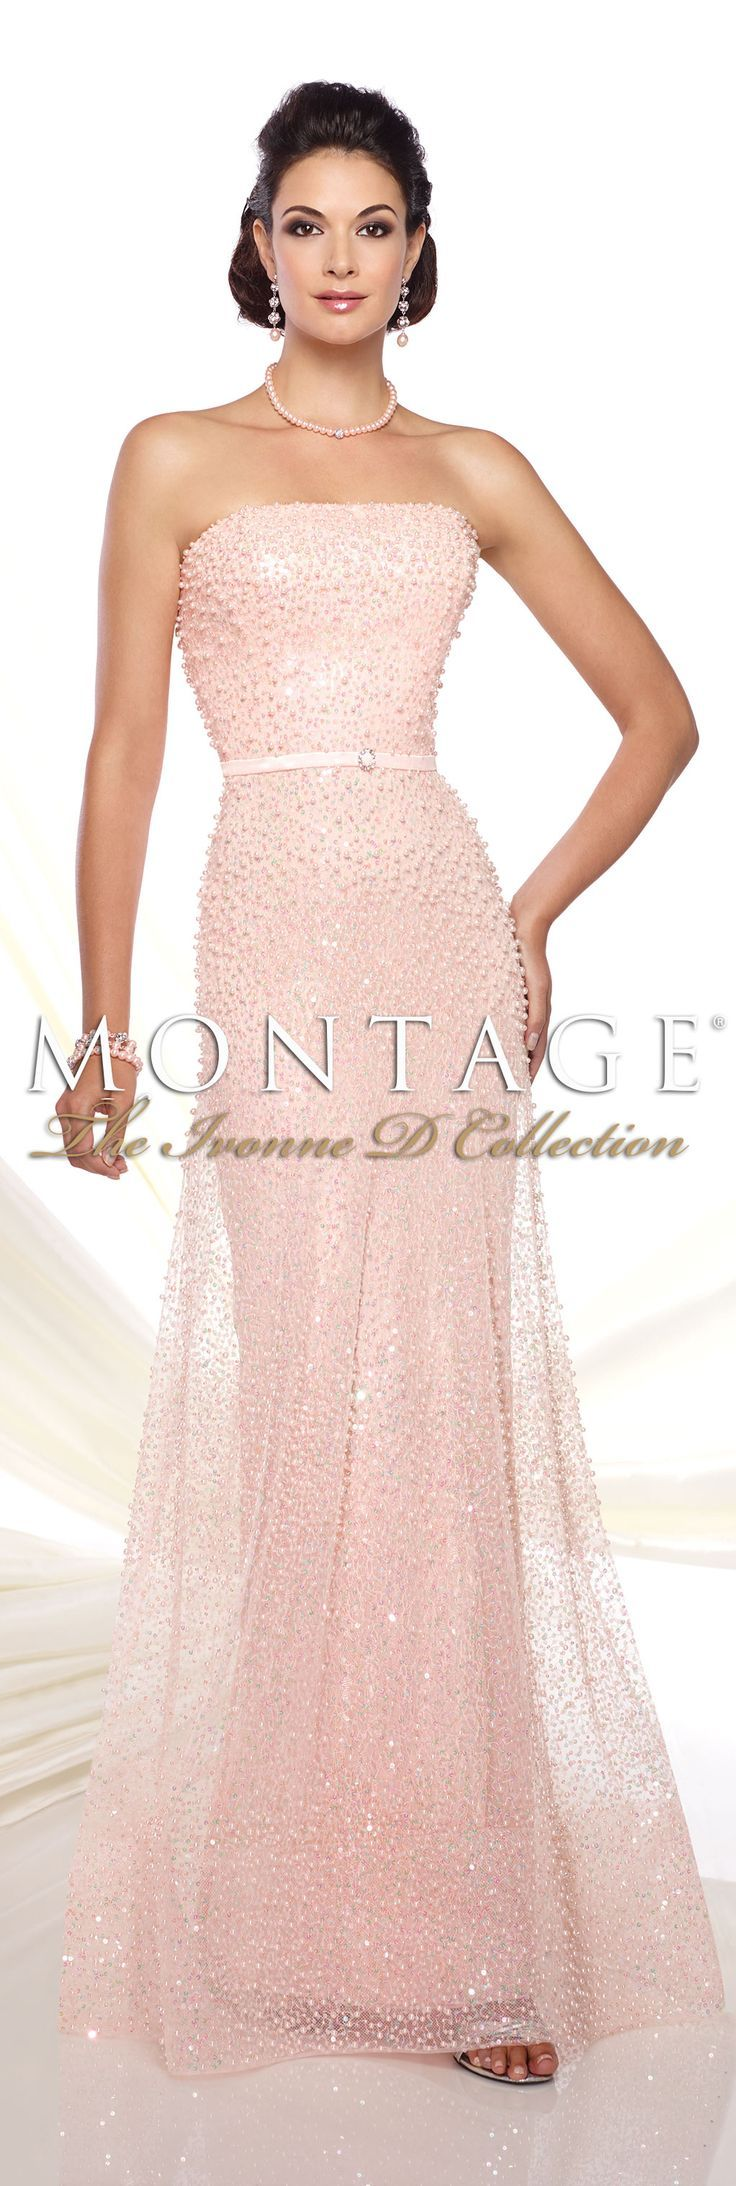 Couture Ivonne D Mother of the Bride Dresses 2018 for Mon Cheri ...